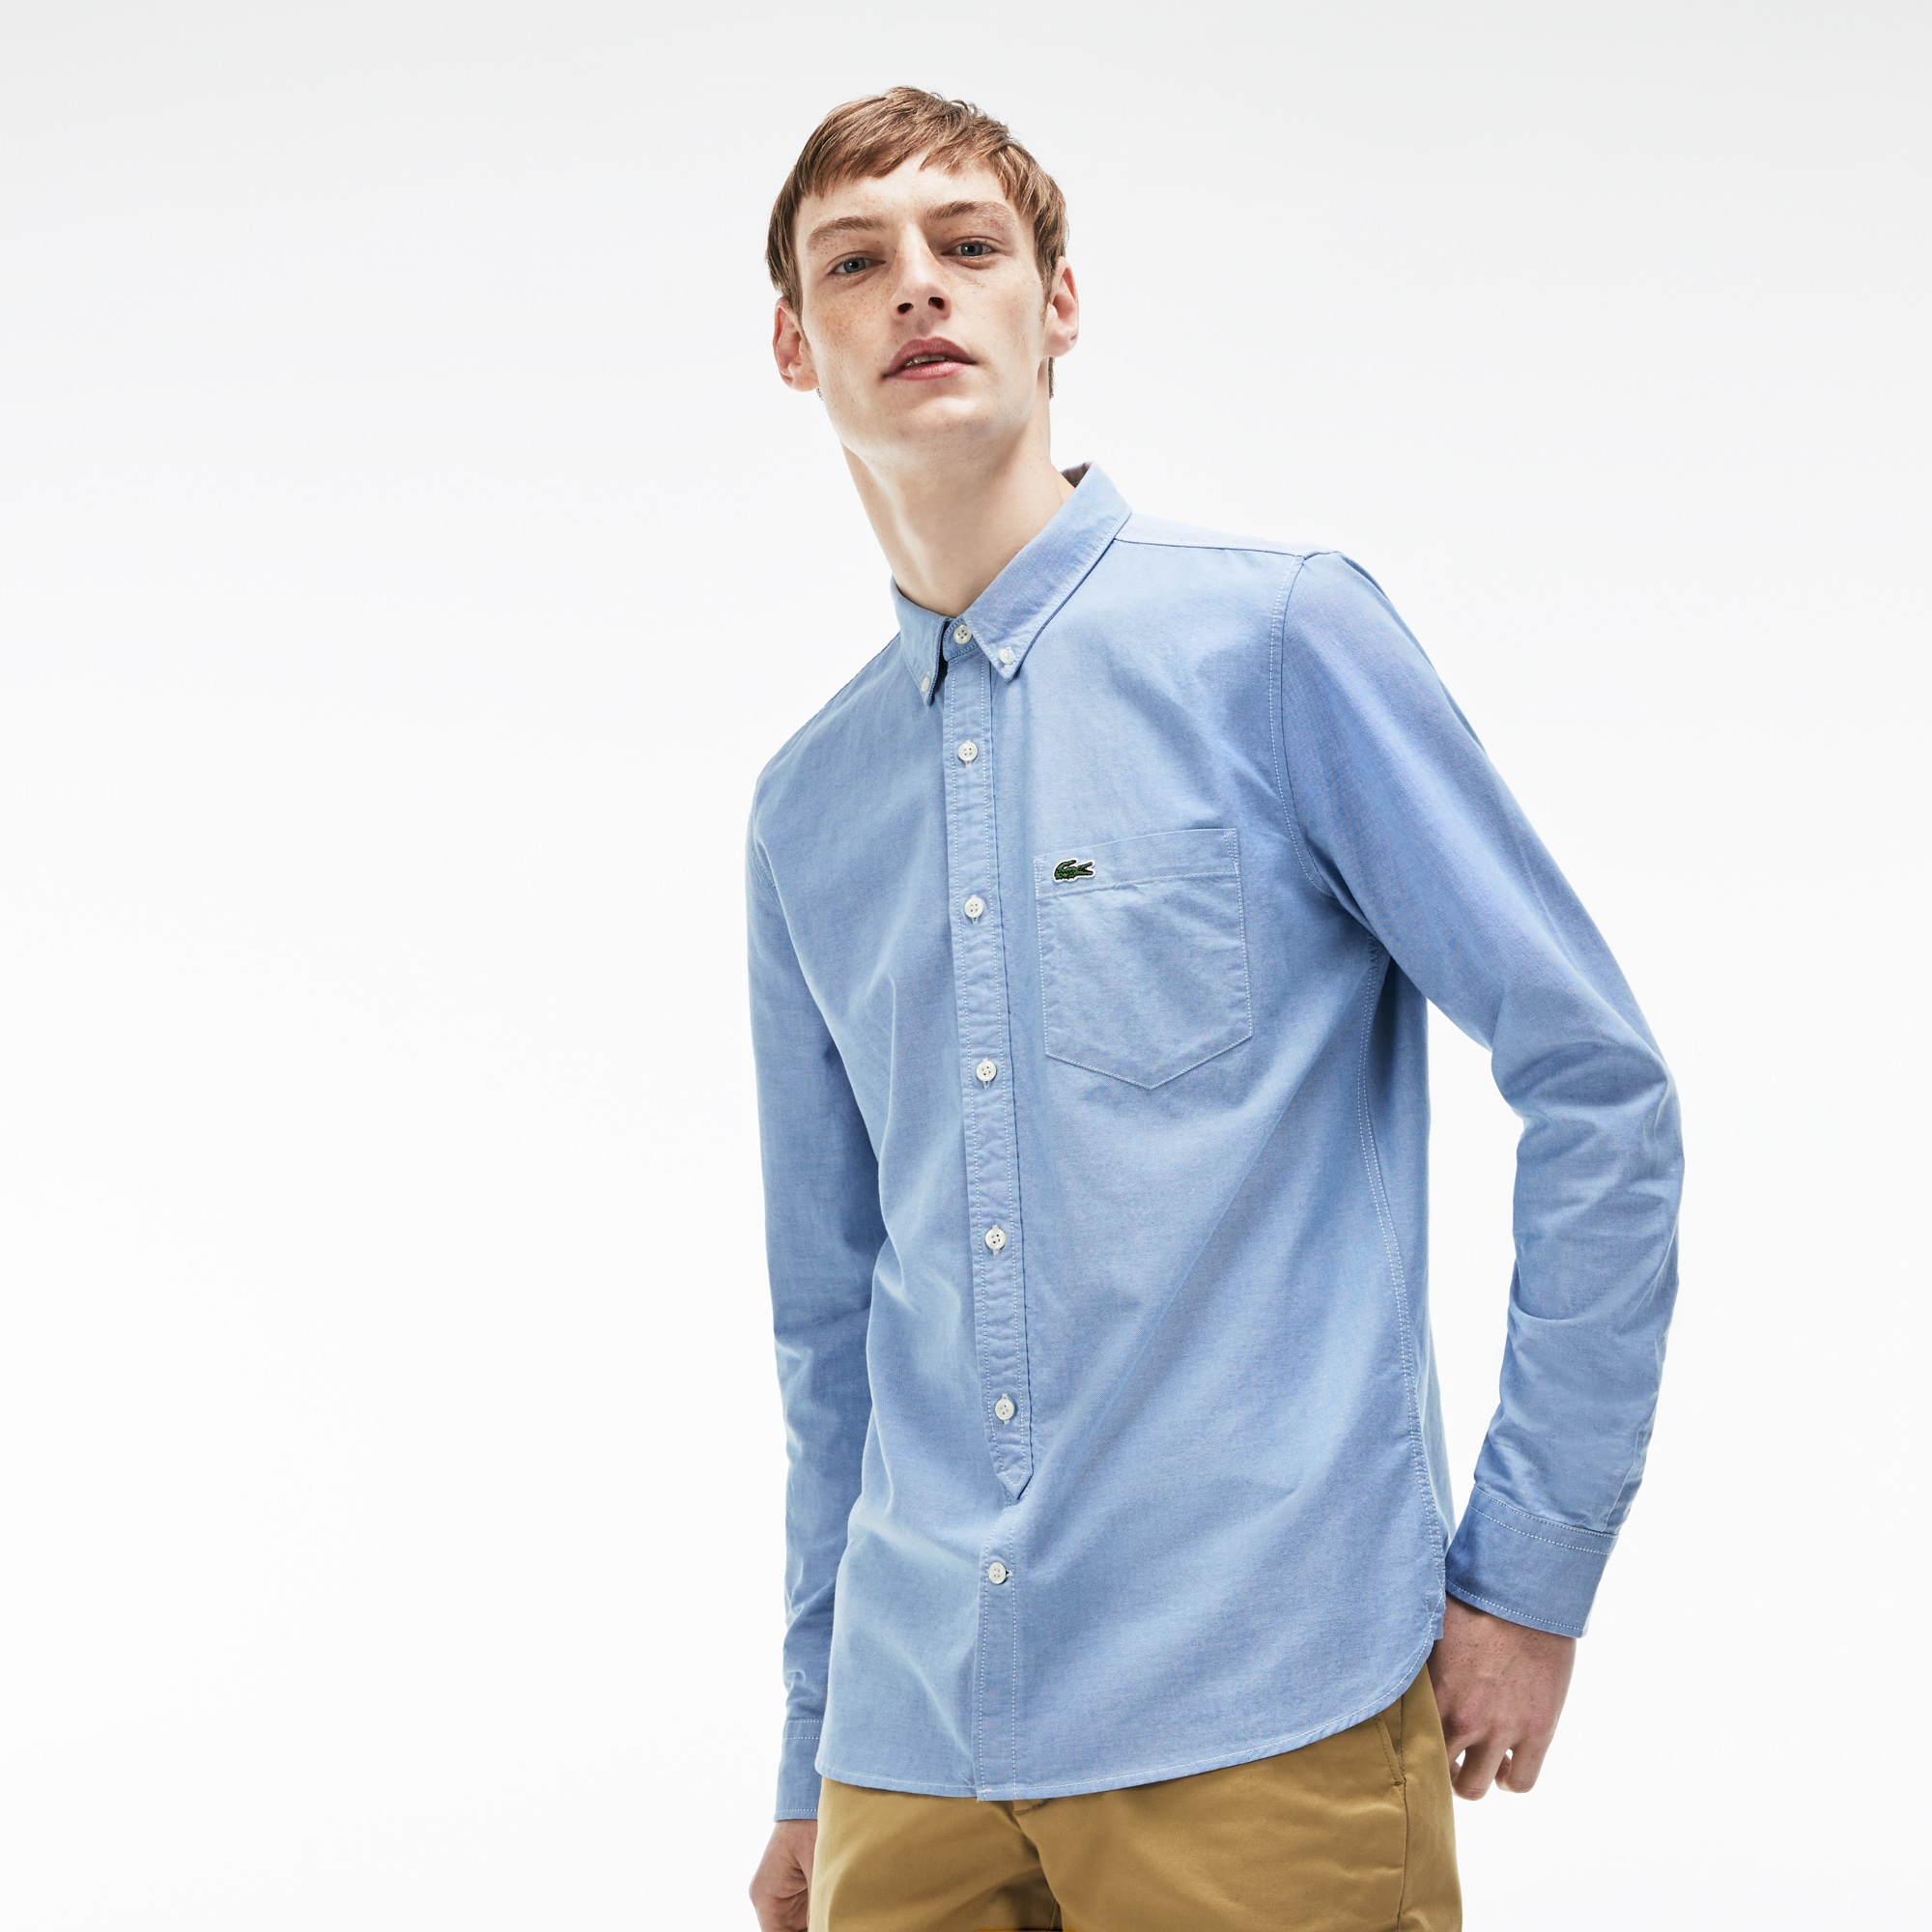 Men's Lacoste LIVE Skinny Fit Oxford Cotton Shirt